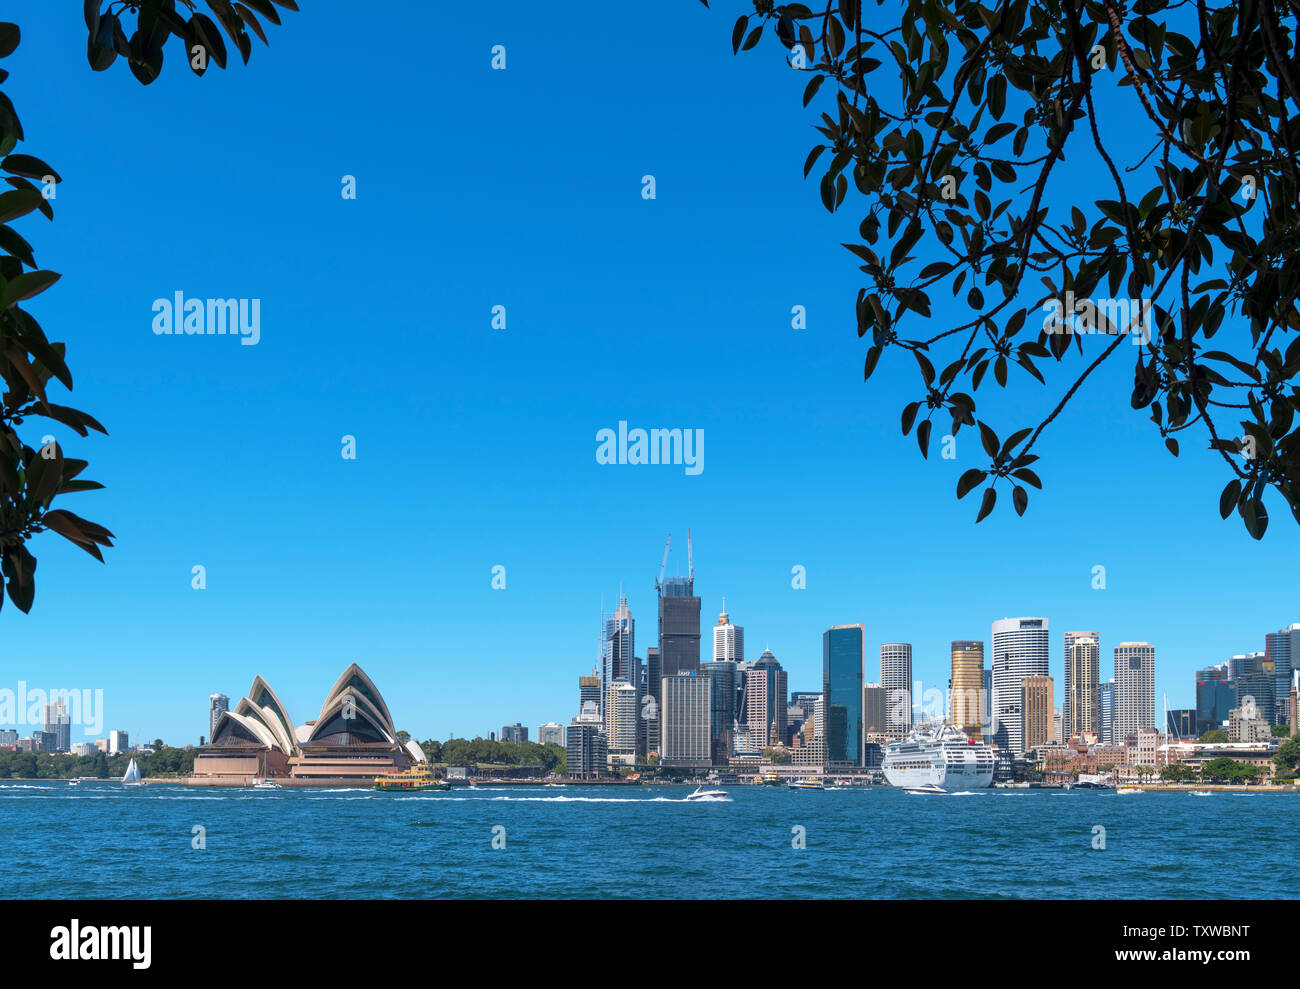 Sydney Opera House and the Central Business District skyline from Kirribilli, Sydney, Australia - Stock Image